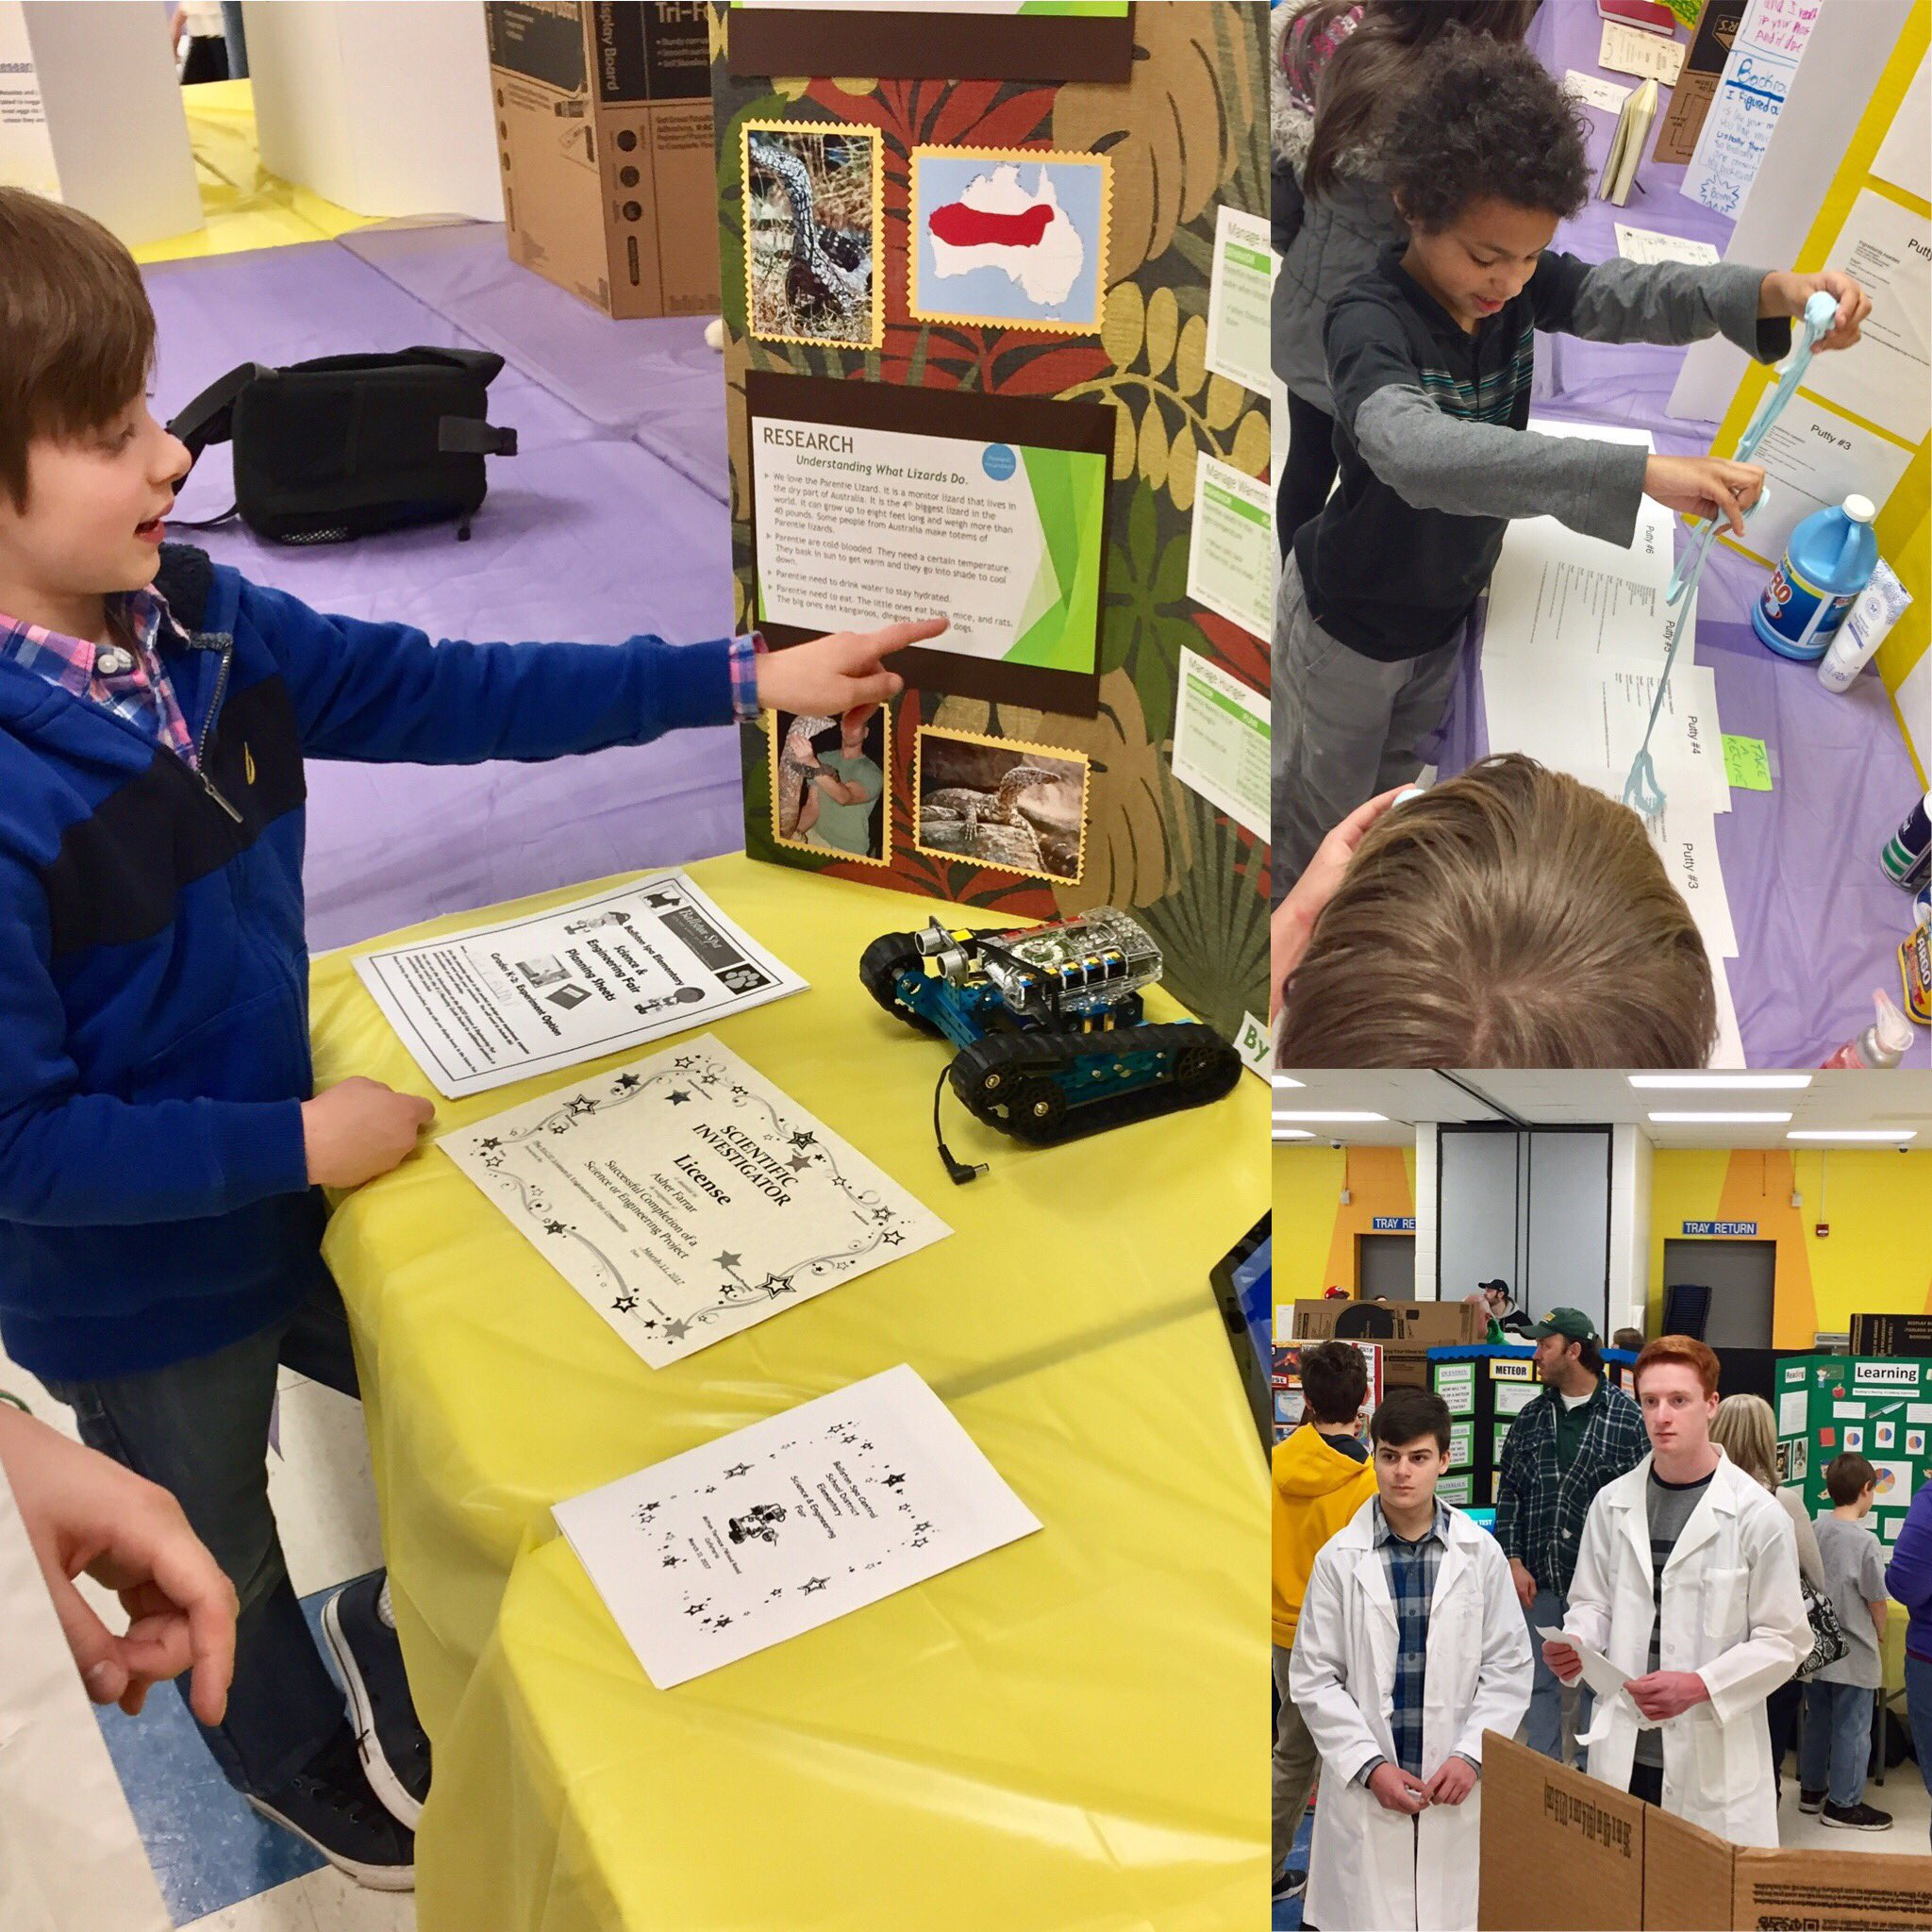 Great to see our youngest scientists presenting at the annual Science & Engineering Fair https://t.co/HXQD2vY7mz #BSCSD #STEM @CleanTechECHS https://t.co/Q4mf8QIQCX